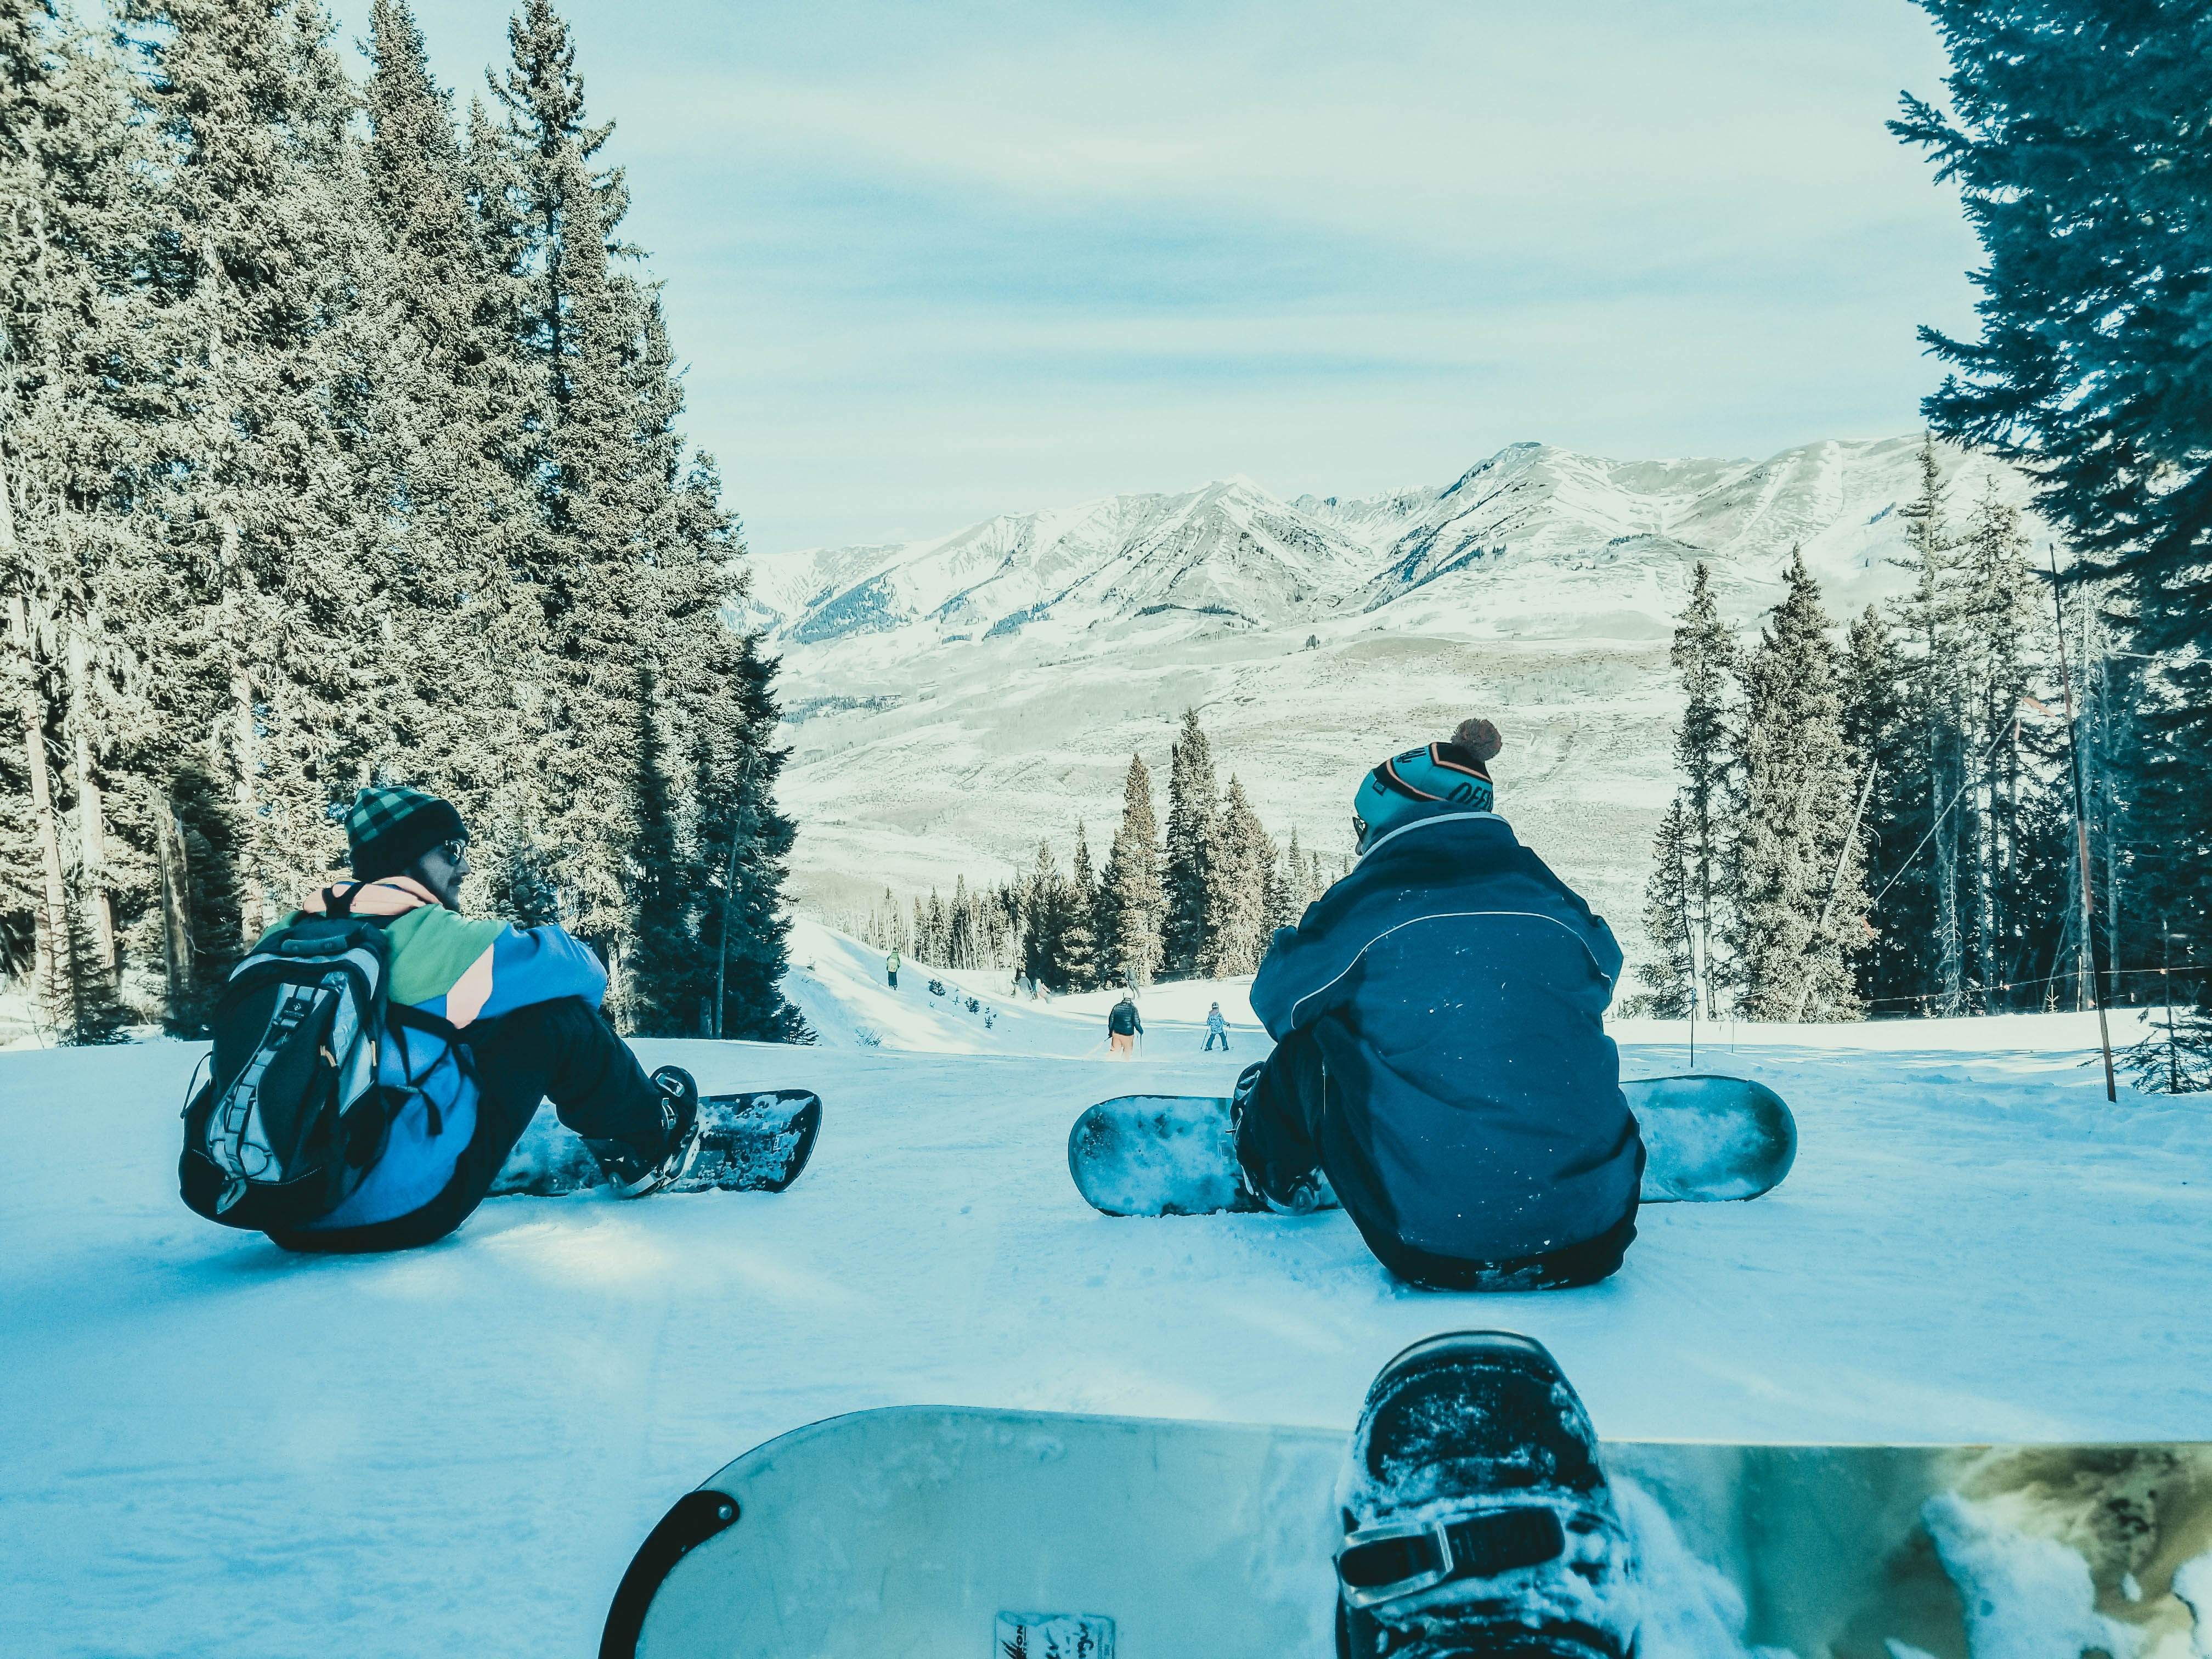 two persons sitting on snow with their snowboards